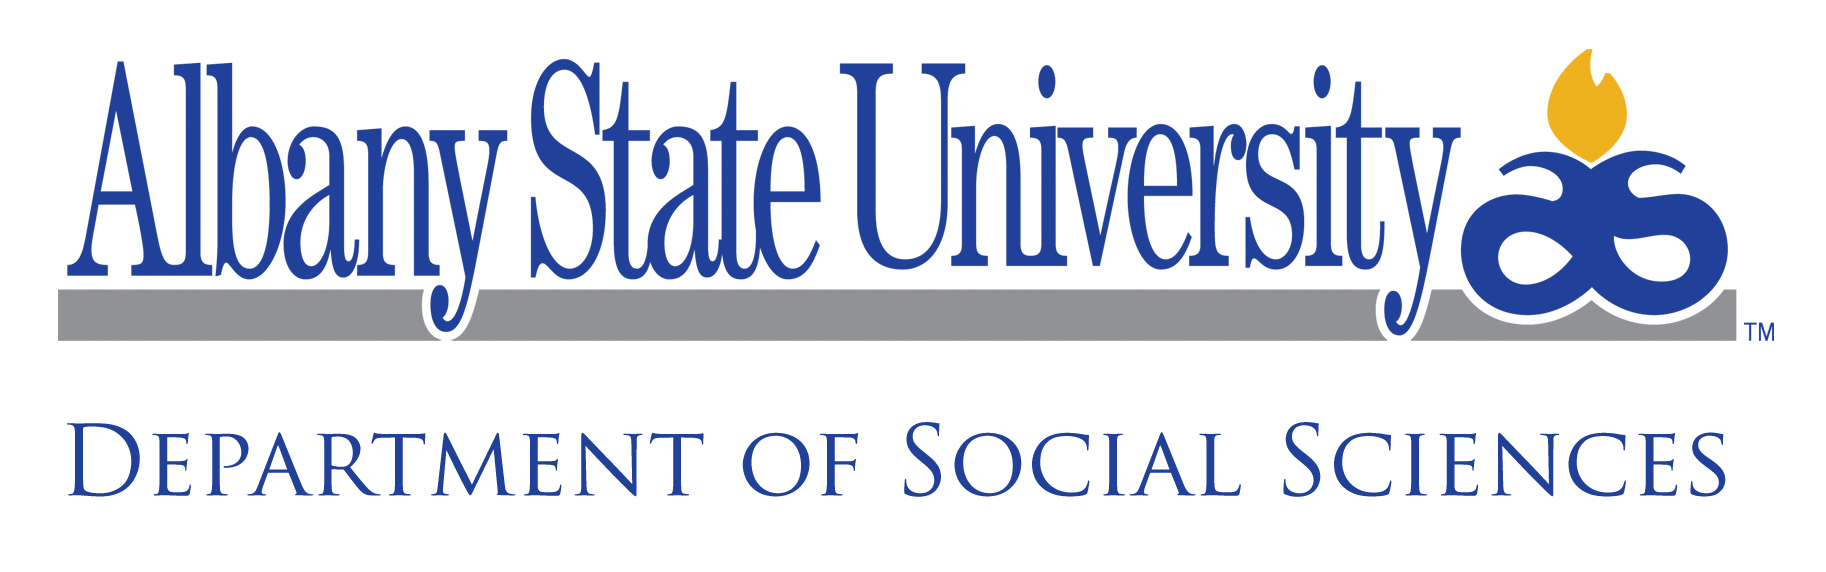 social science logo